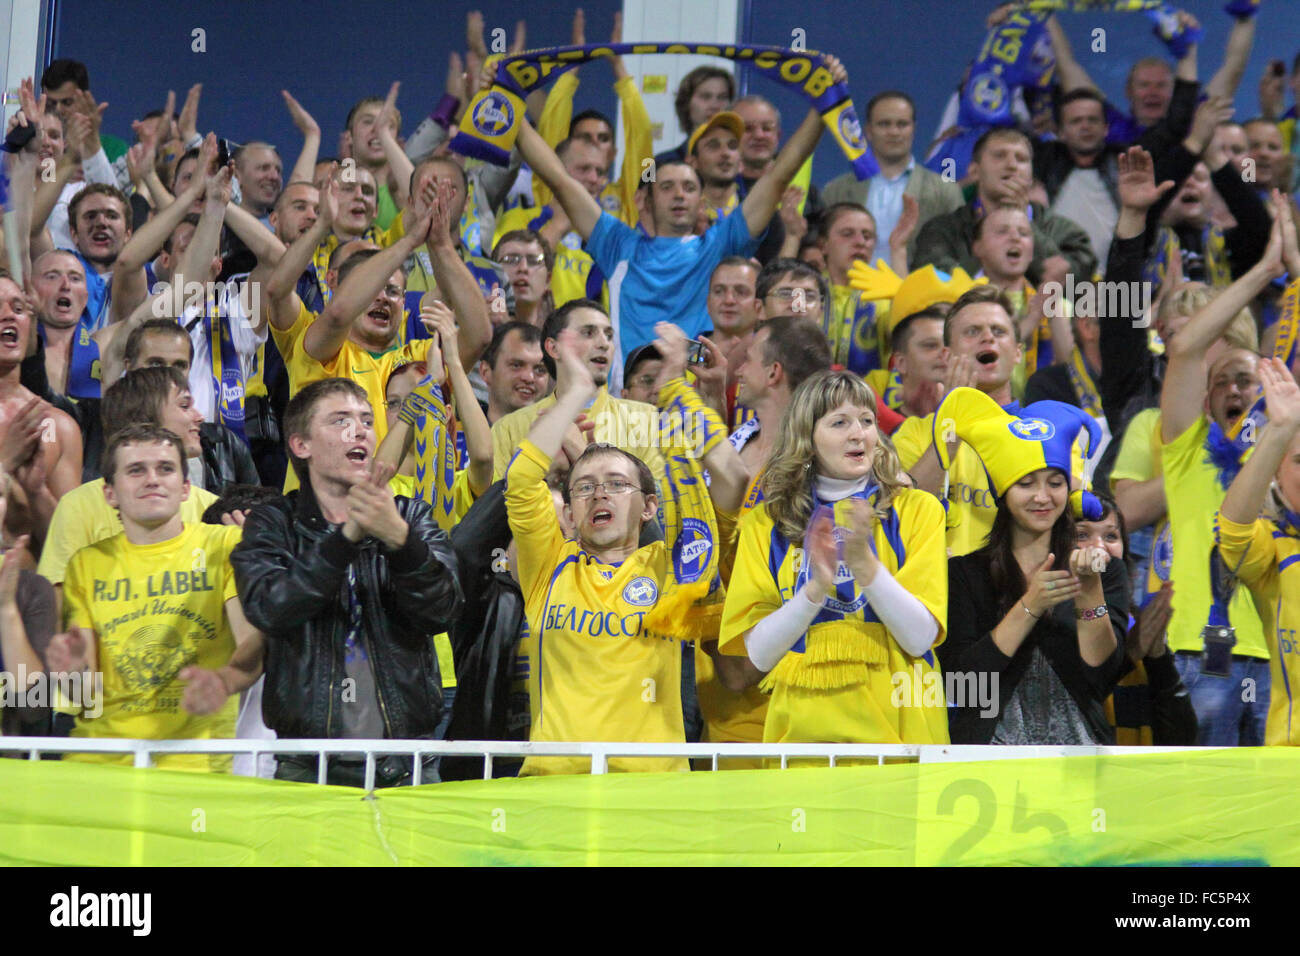 FC BATE Borisov fans celebrate after scoring against FC Dynamo Kiev during their UEFA Europa League game - Stock Image